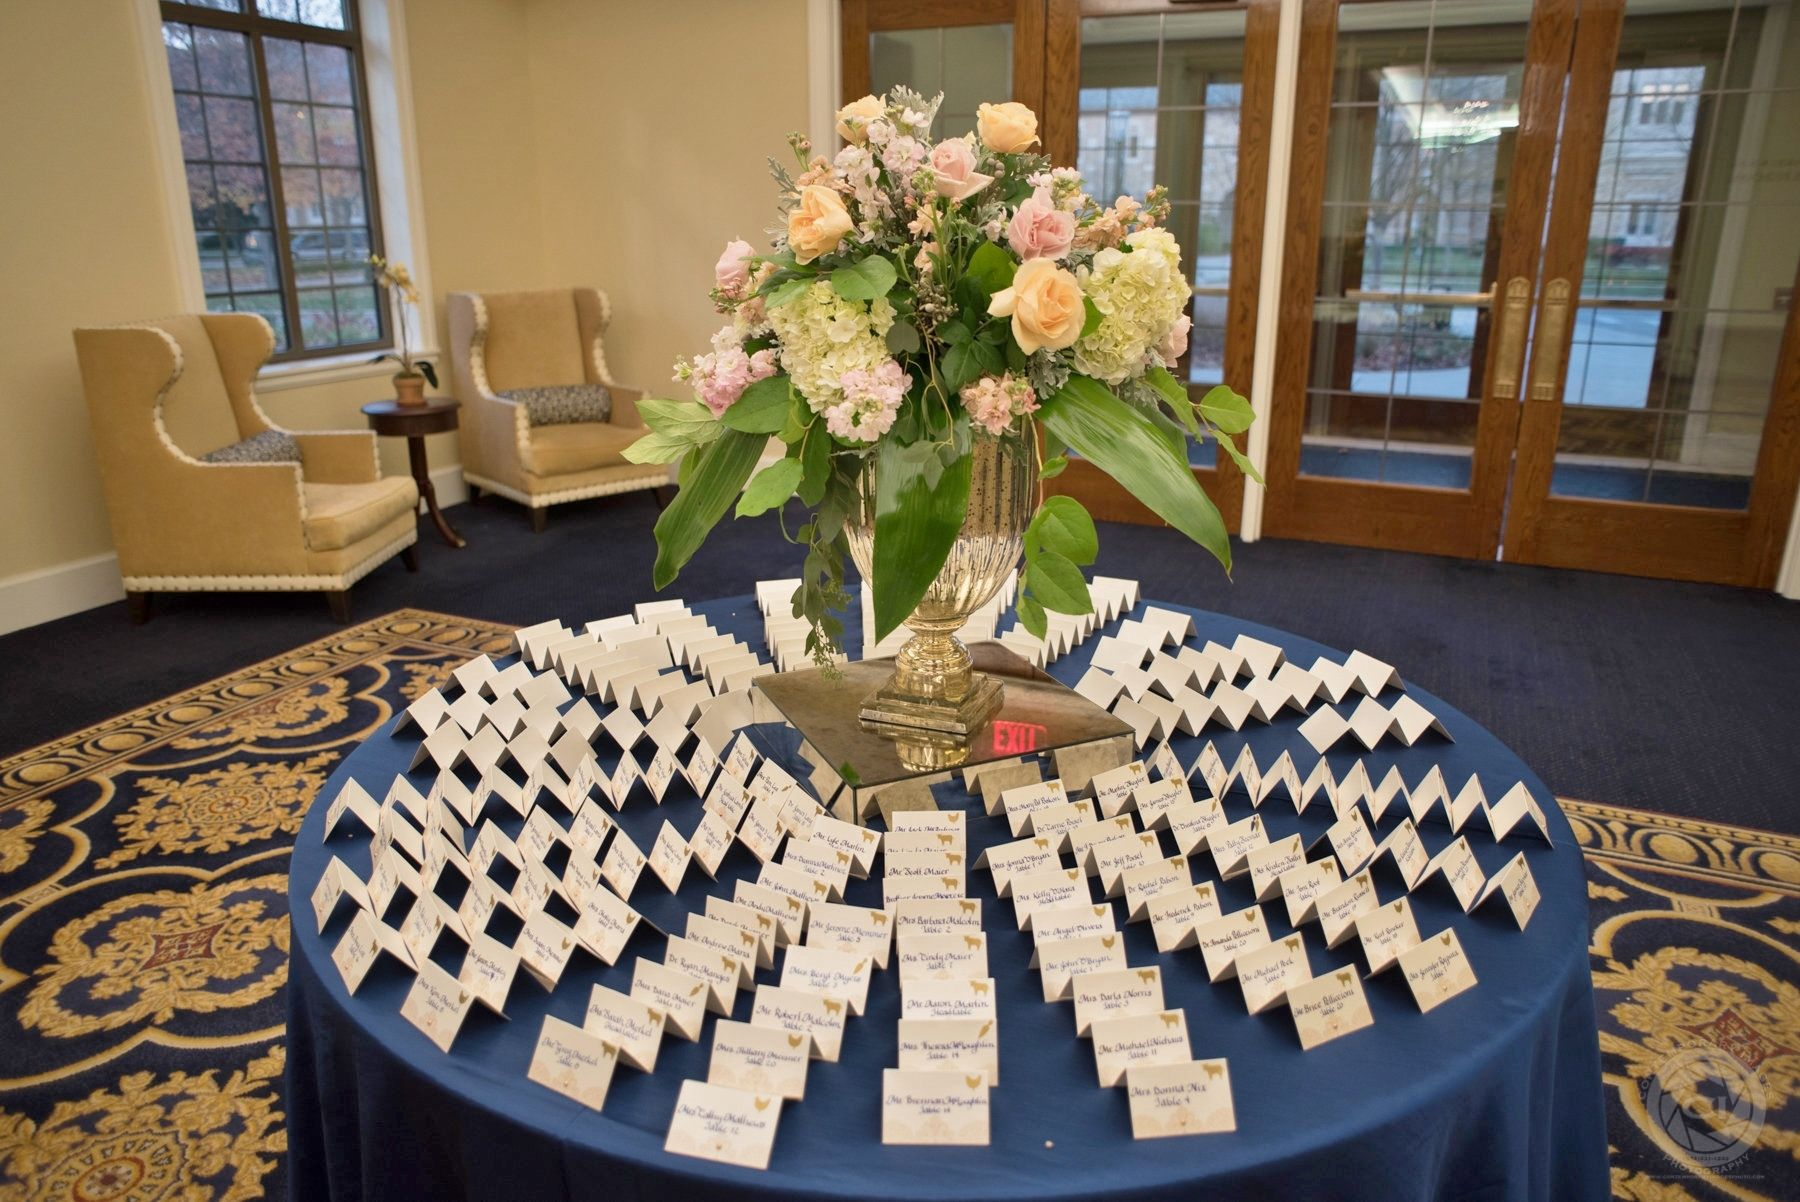 Beautiful place card display around tall floral centerpiece. Navy blue calligraphy was done by hand on each of the ivory escort cards. I loved the gold meal selection stickers on each card. They were perfect for our navy and gold wedding at the University of Notre Dame.